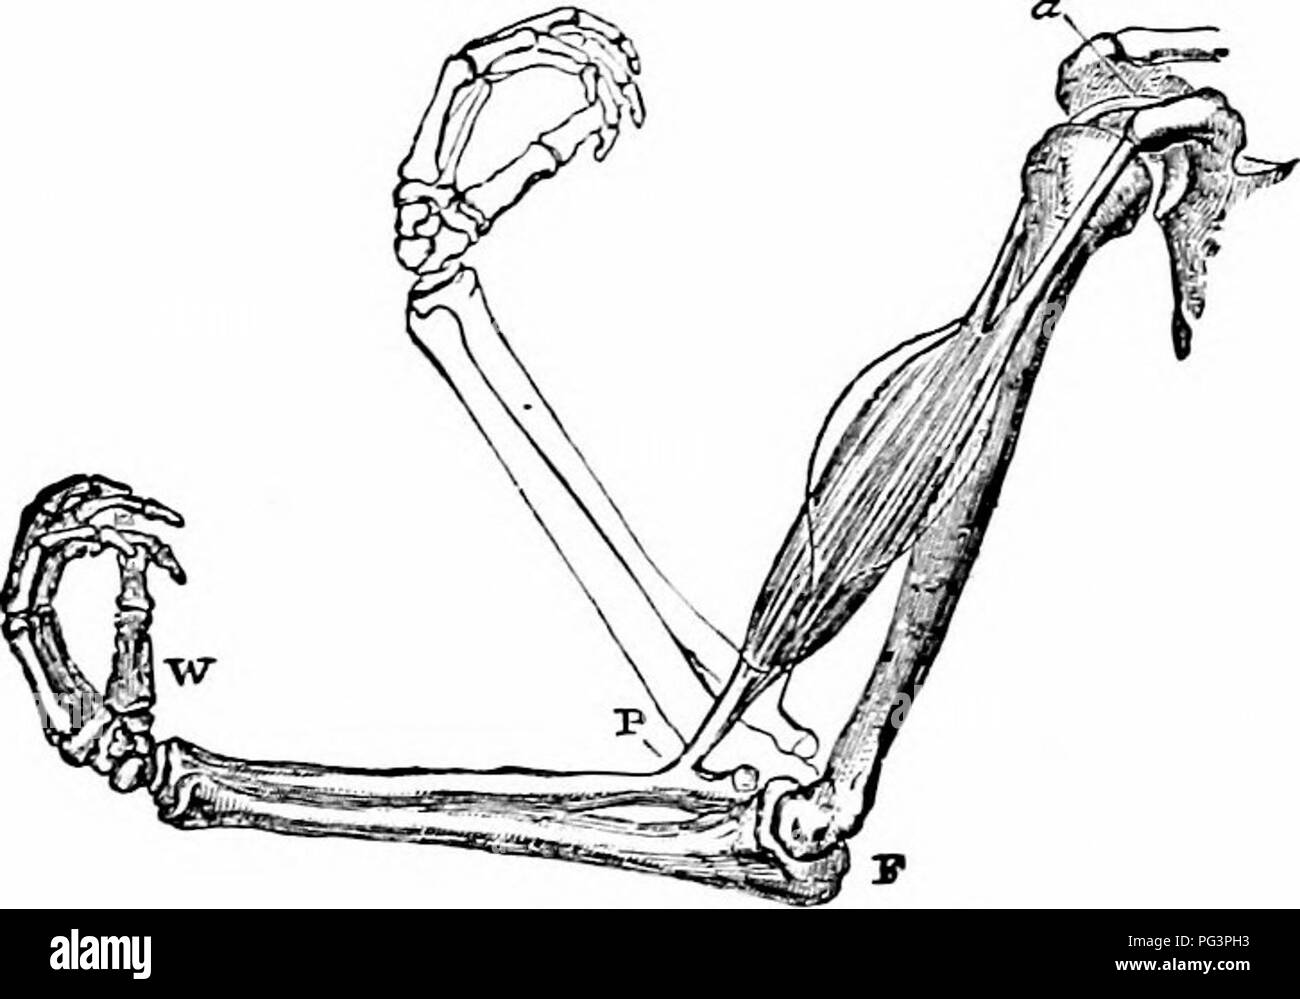 hight resolution of  a manual of zoology the metazoa 67 the account of the protozoa the special study of these constitutes as already pointed out in the introduction